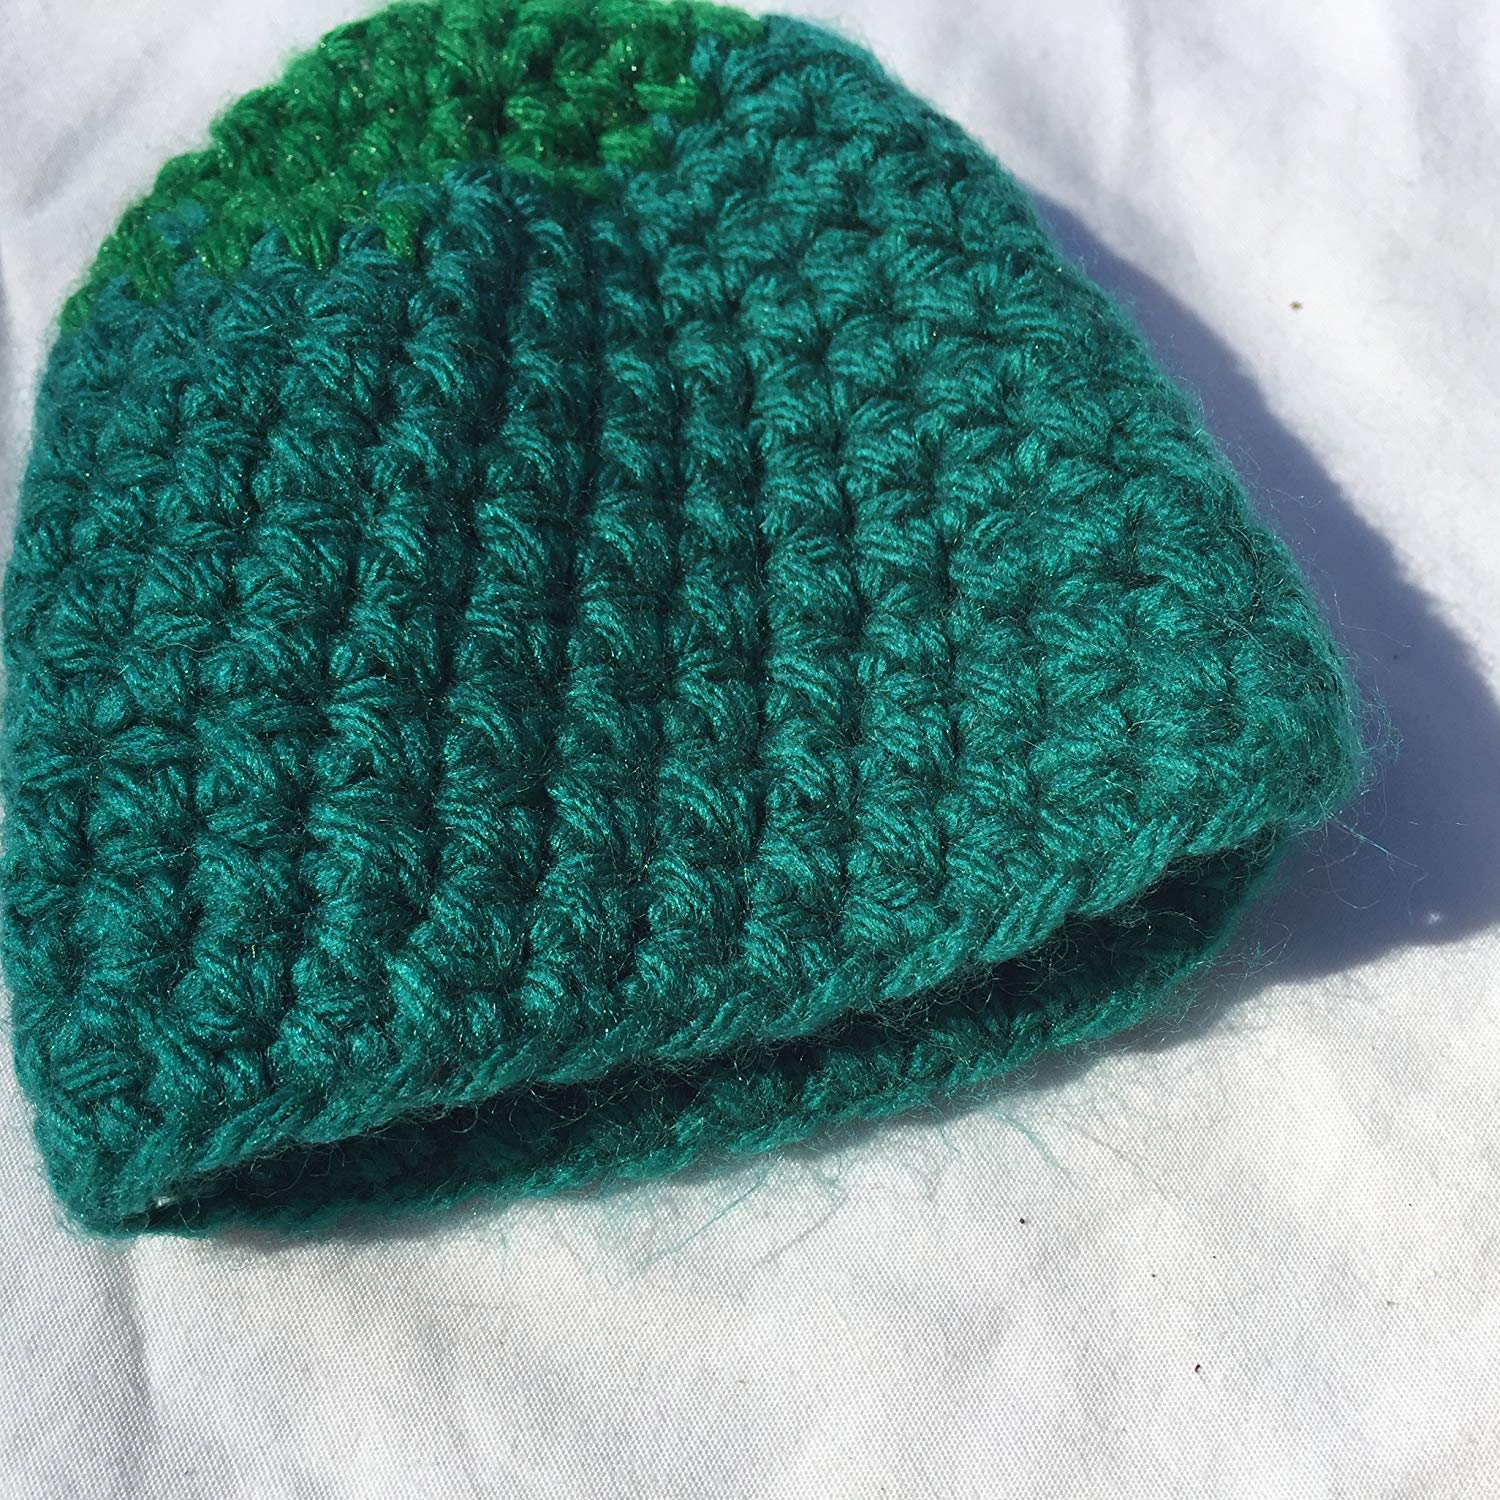 67b94b90789 Get Quotations · Green and Blue Striped 4x8 Newborn Baby Crocheted Hat